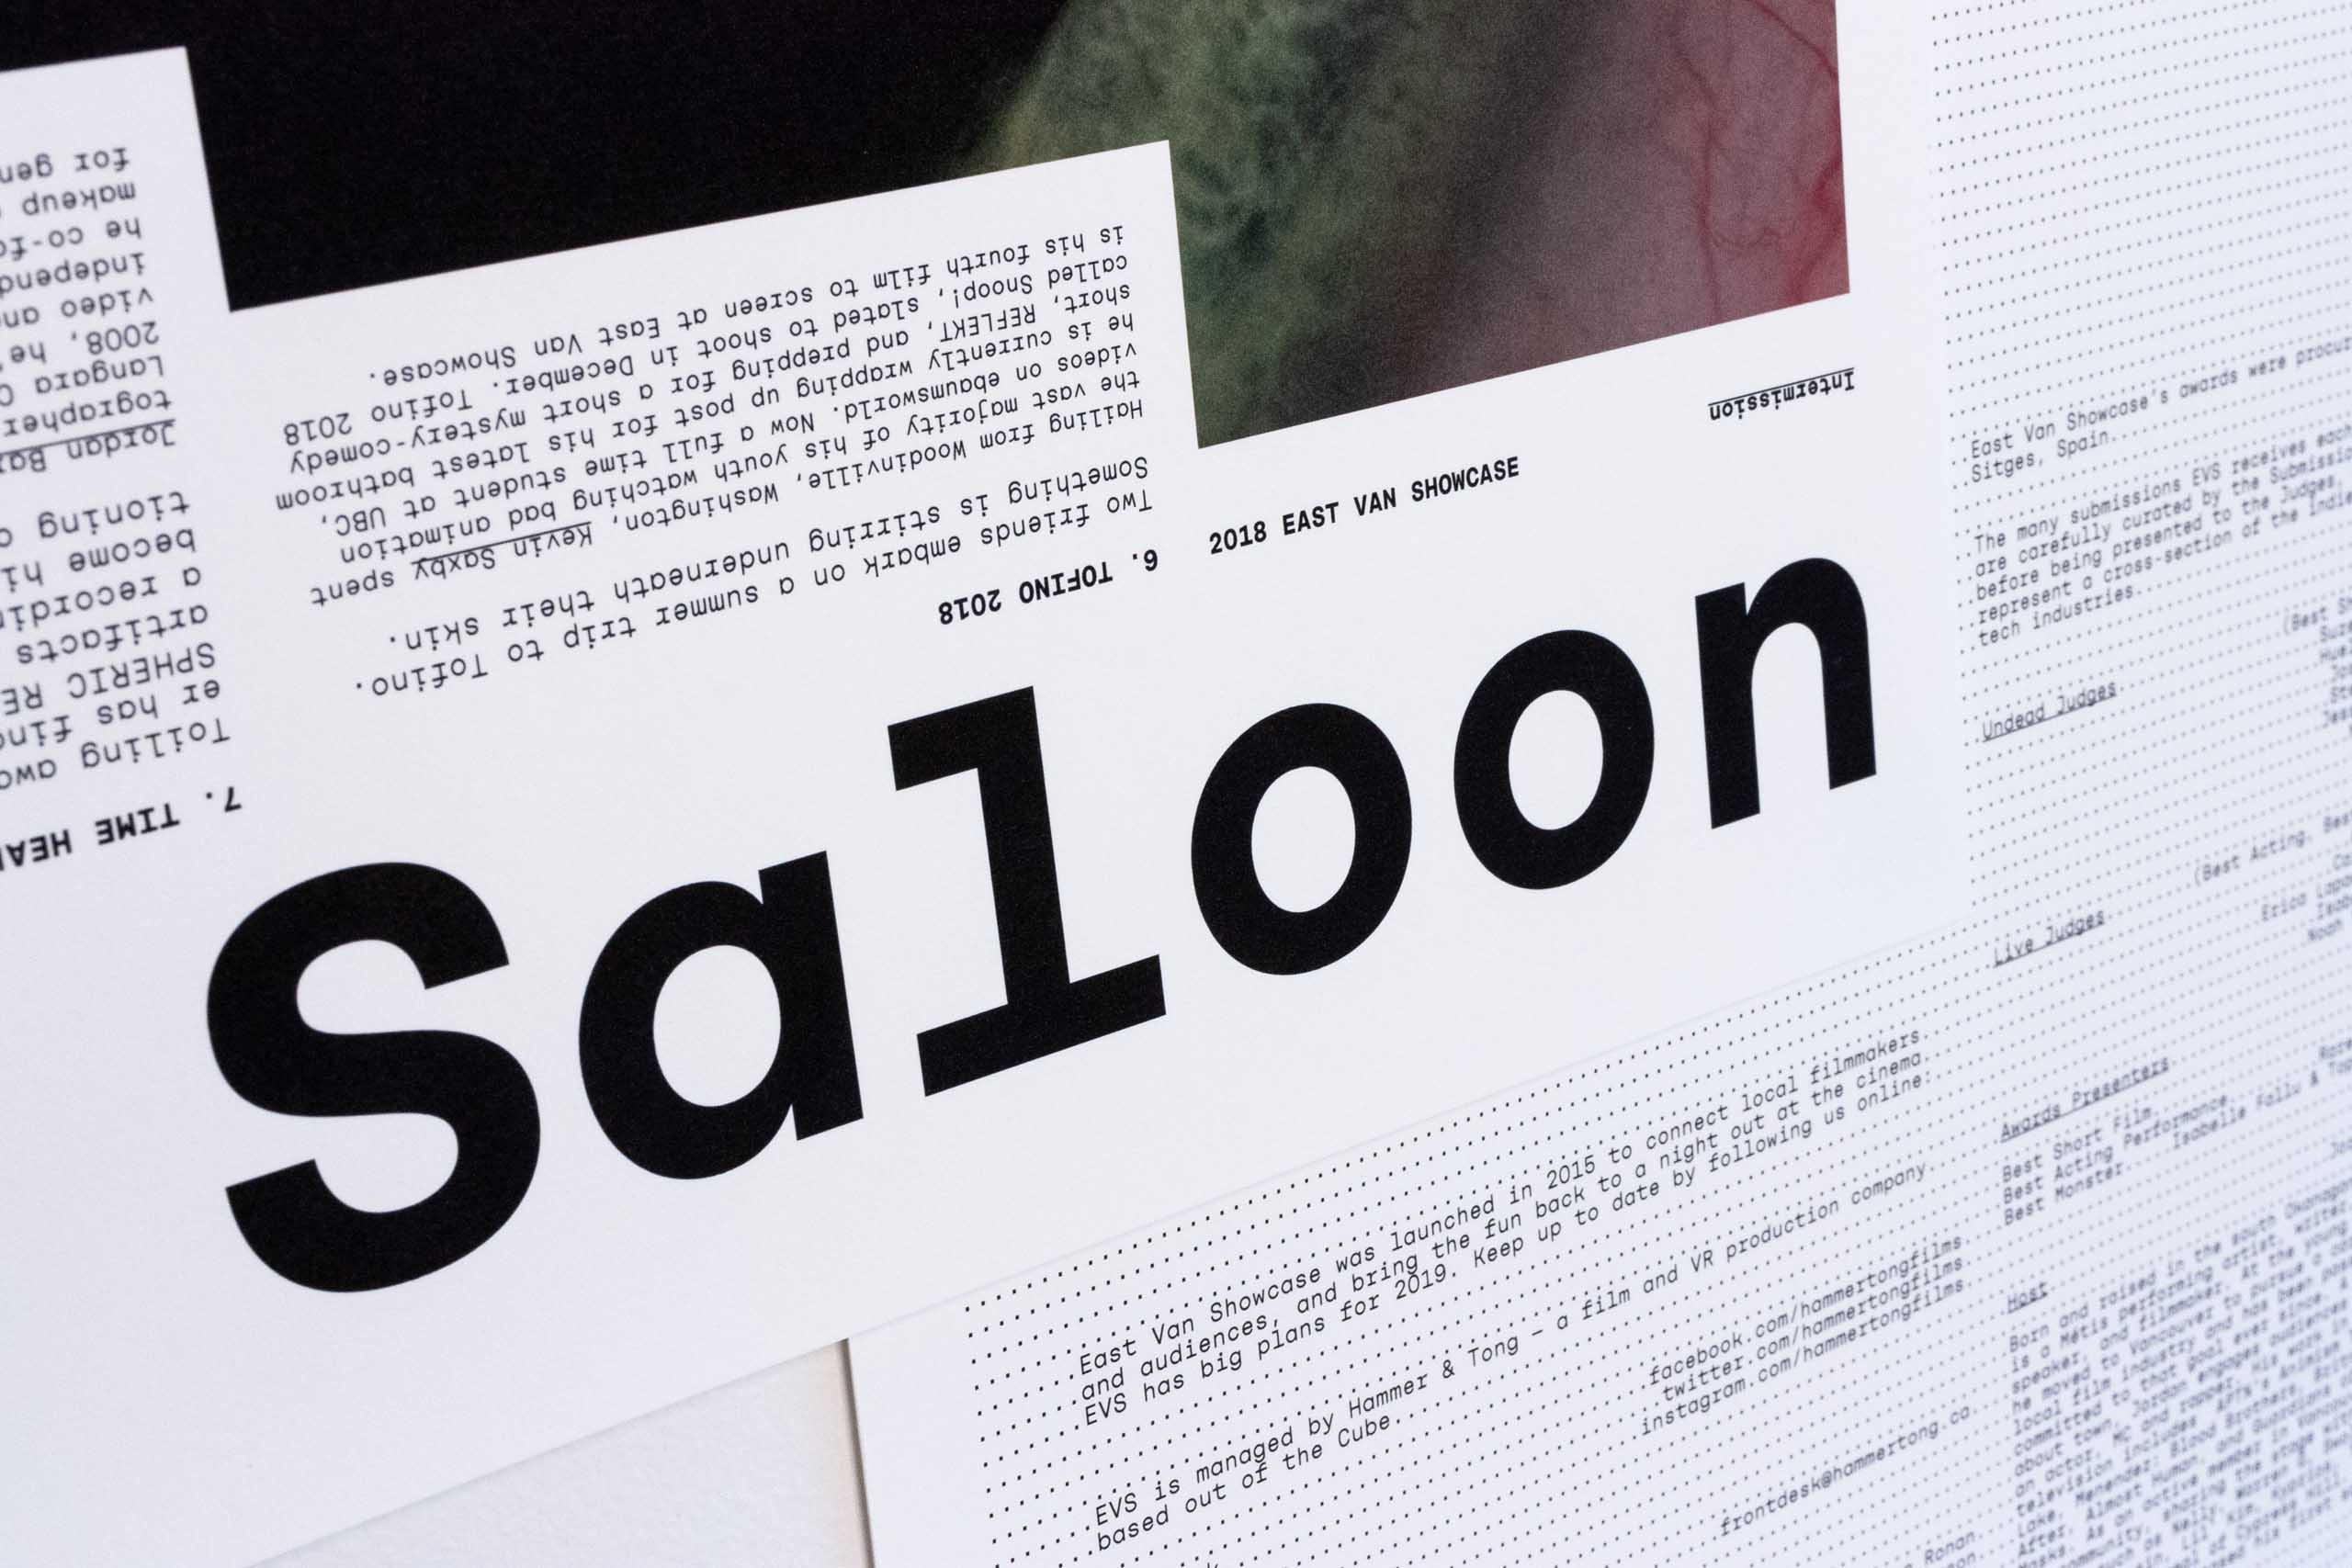 Close up of Poster Headlne set in Rational Display typeface — by Yagnyuk.